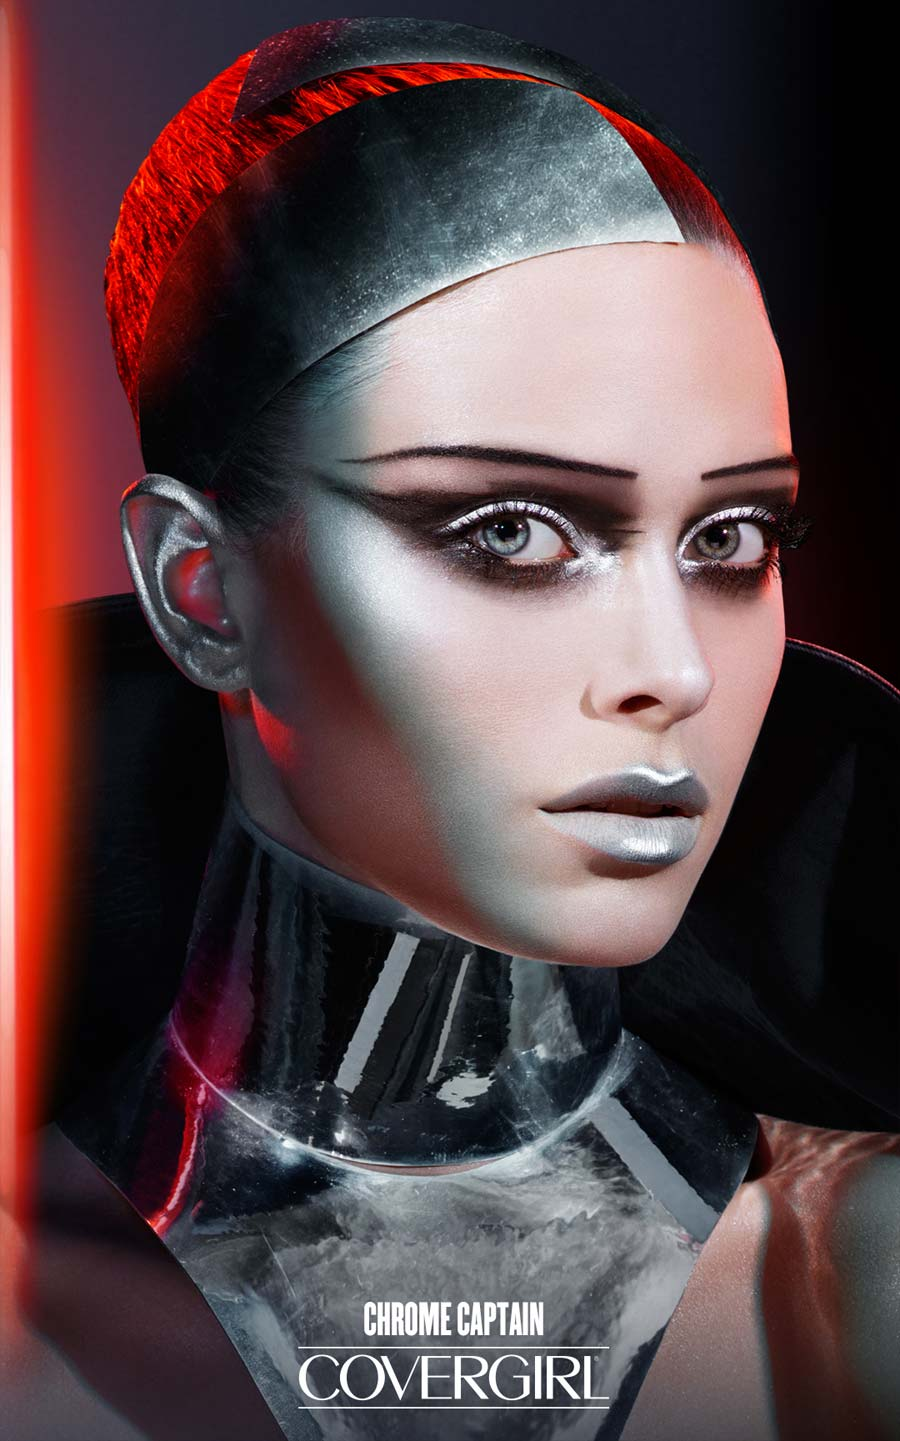 star-wars-covergirl-look-004